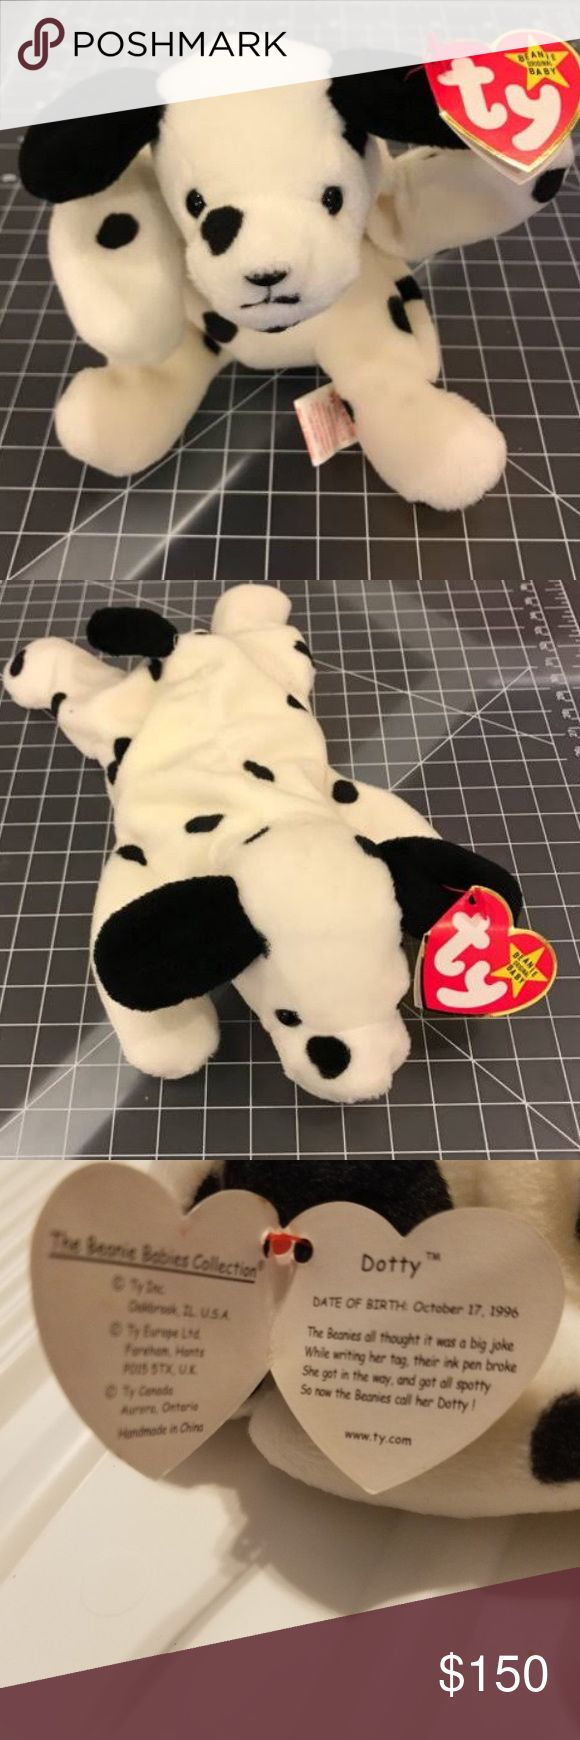 Dottie the beanie baby-vintage item but brand new Rare - 1996. Collectors item -NWT ty Other